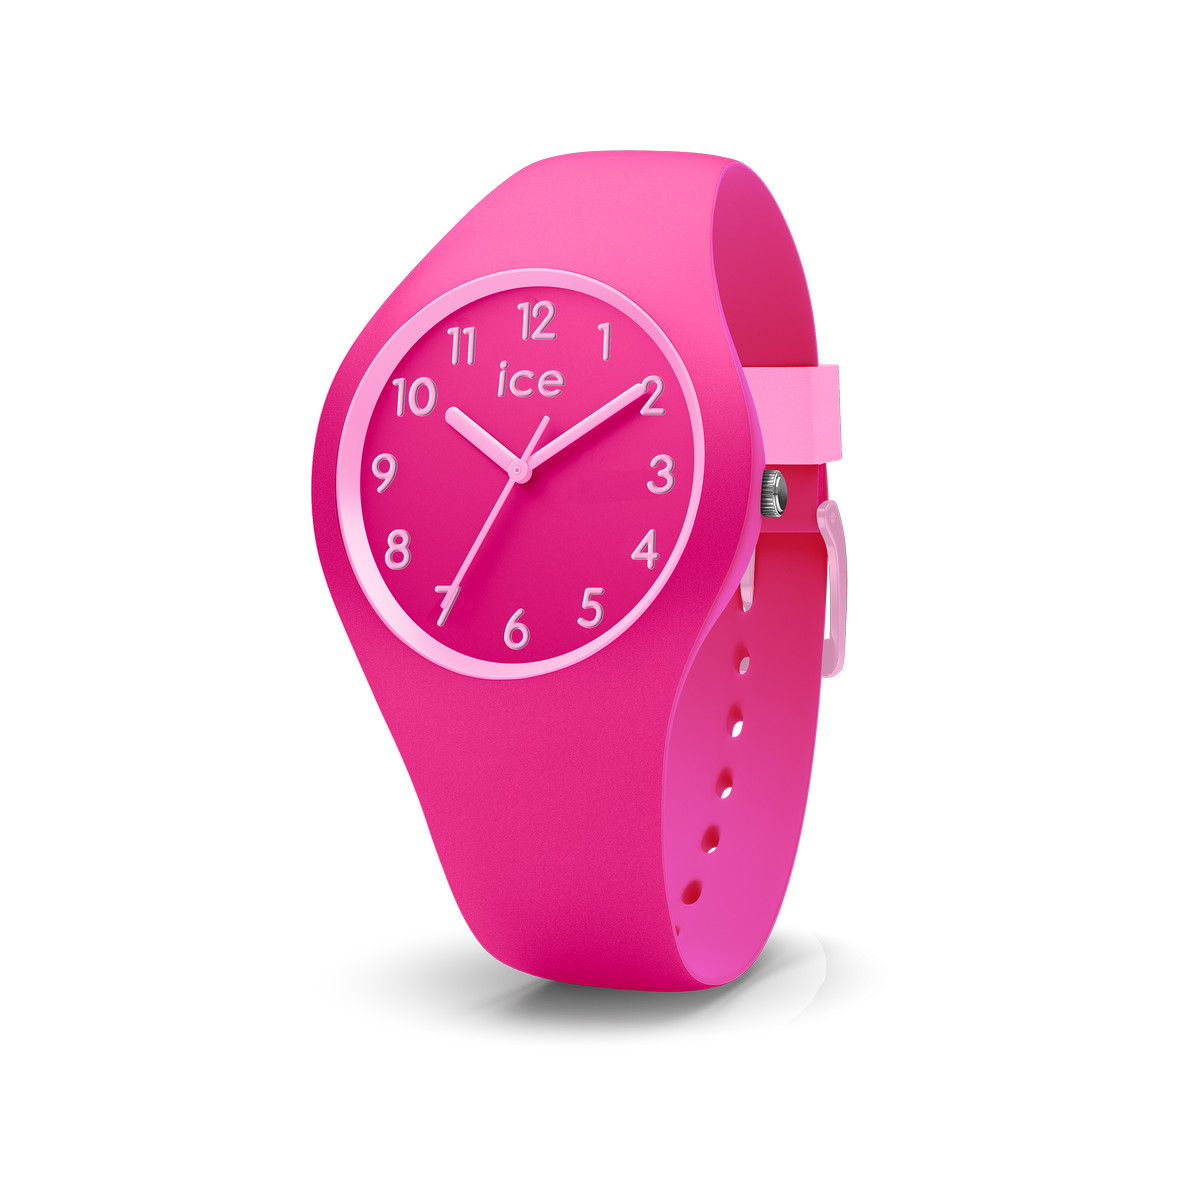 most popular cheapest release date Montre Ice Watch femme enfant silicone rose